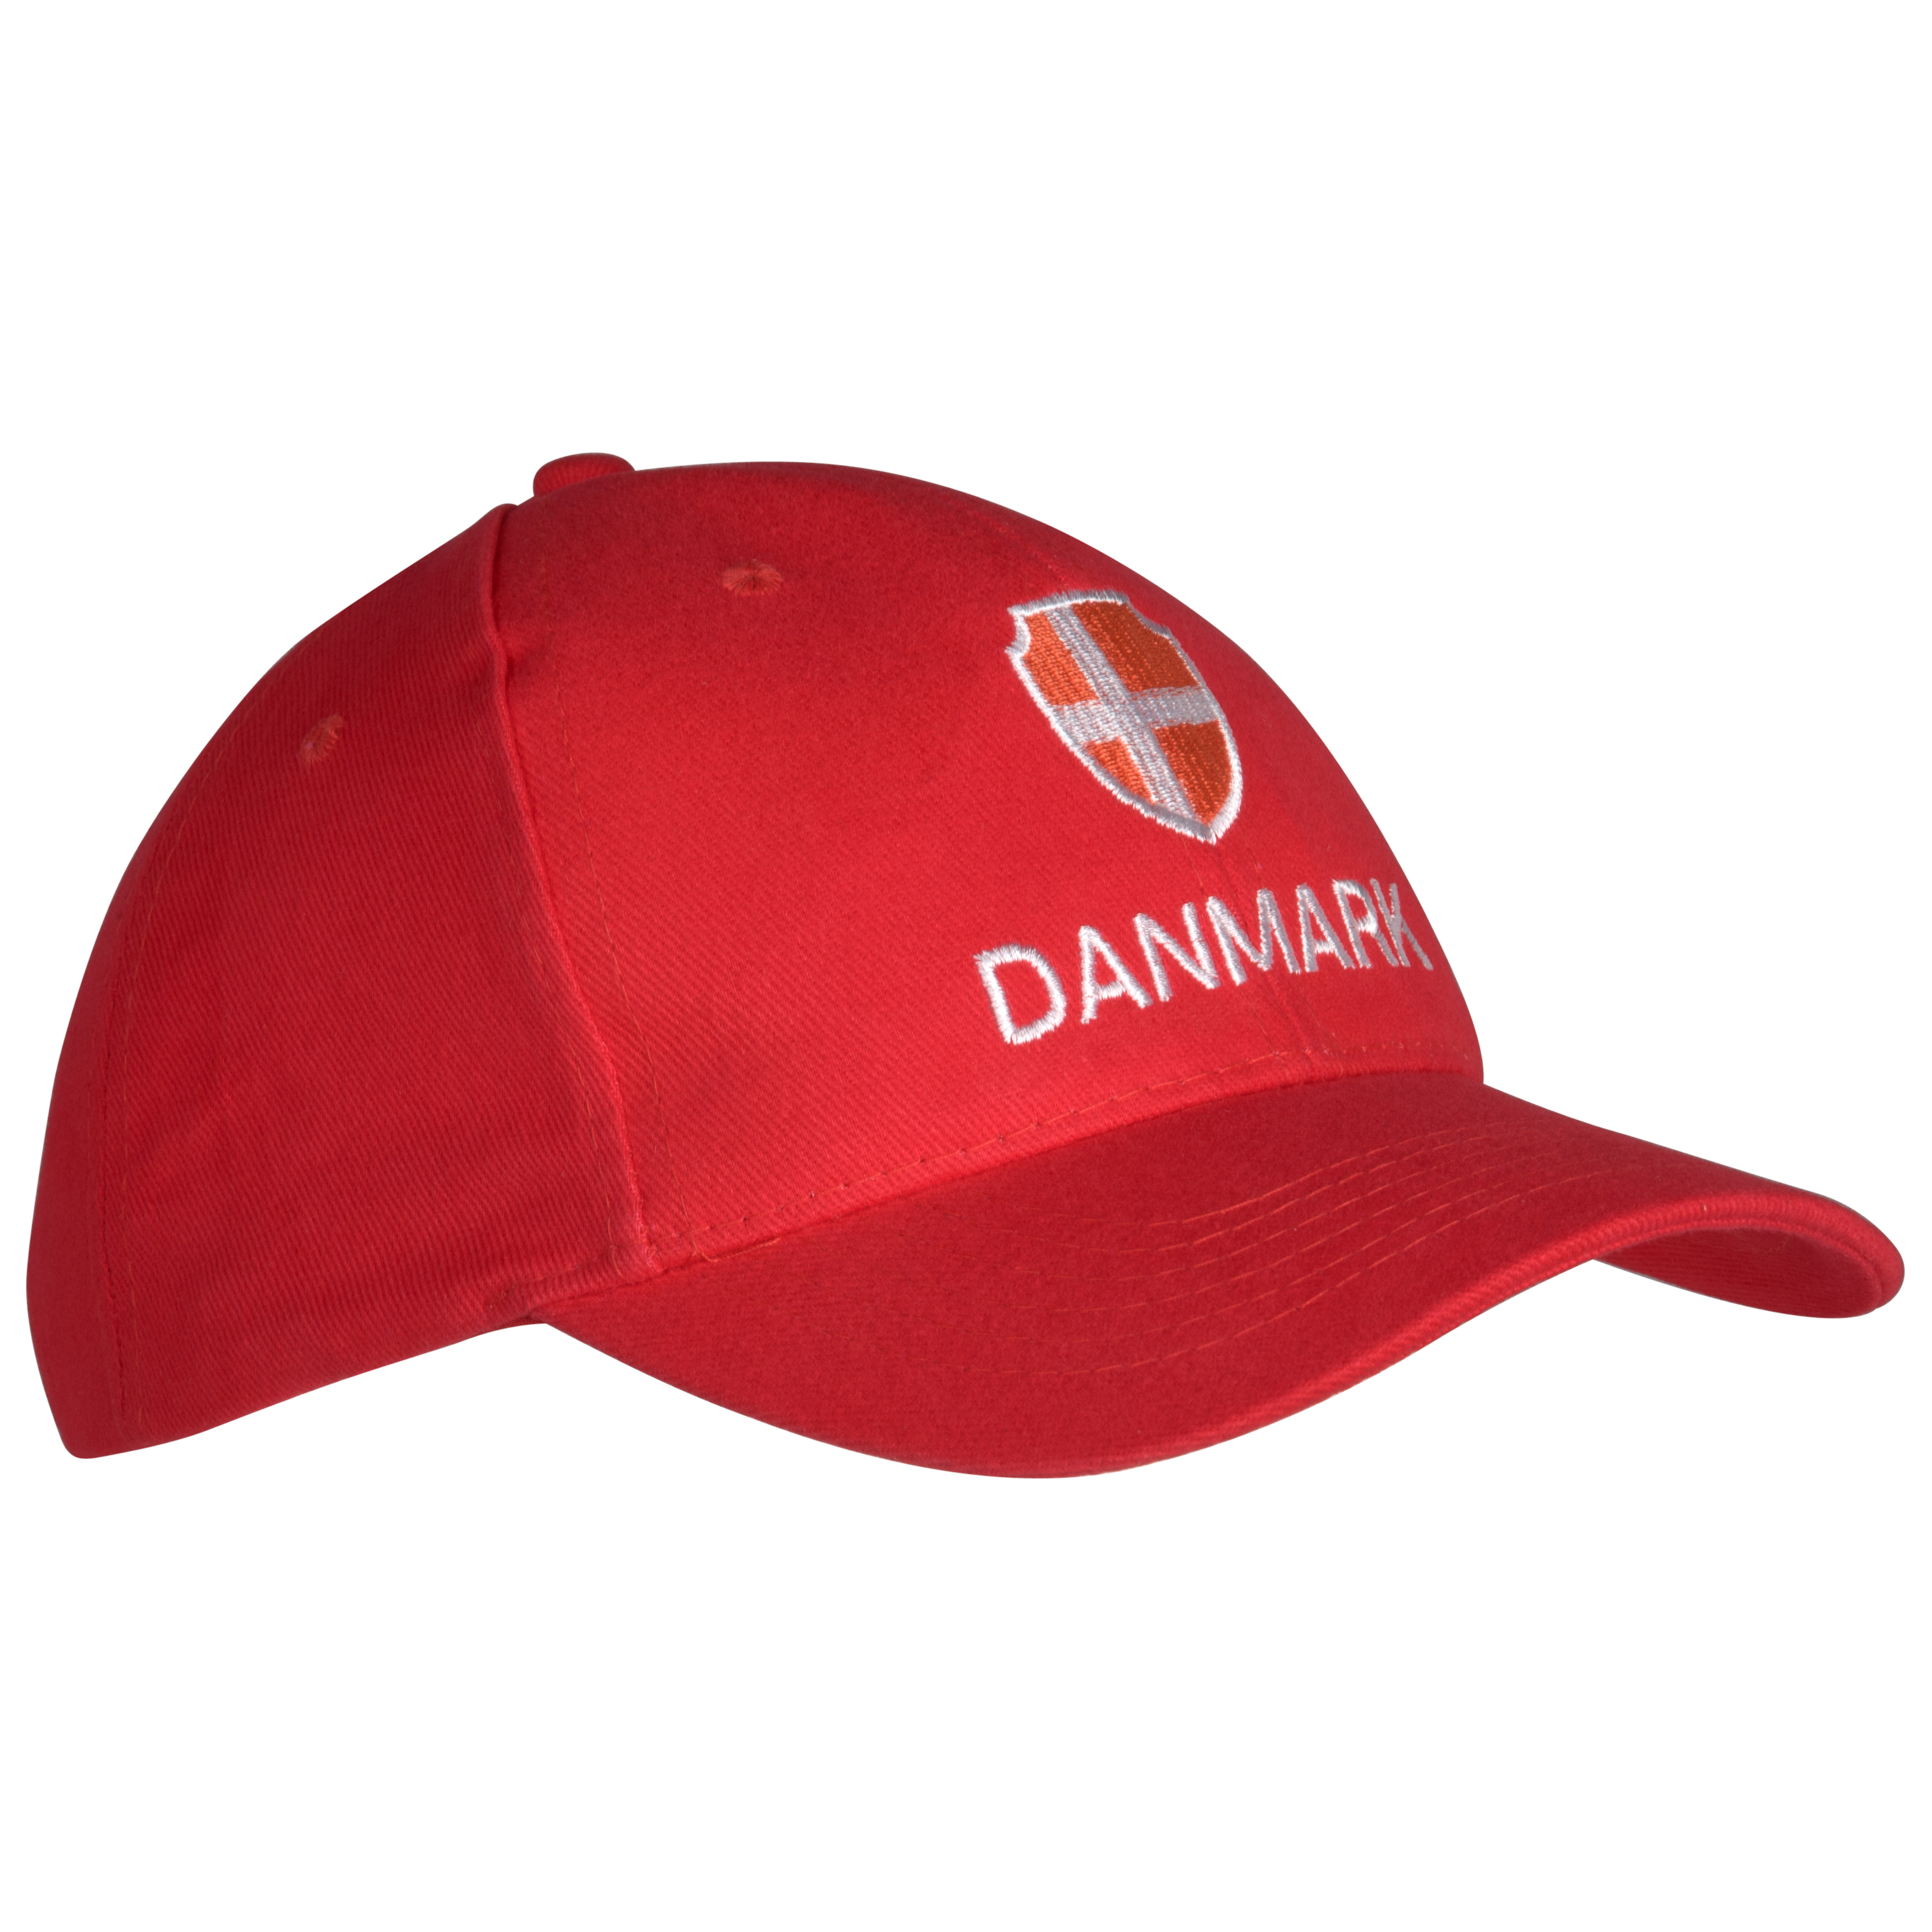 Denmark Cap - Red/White